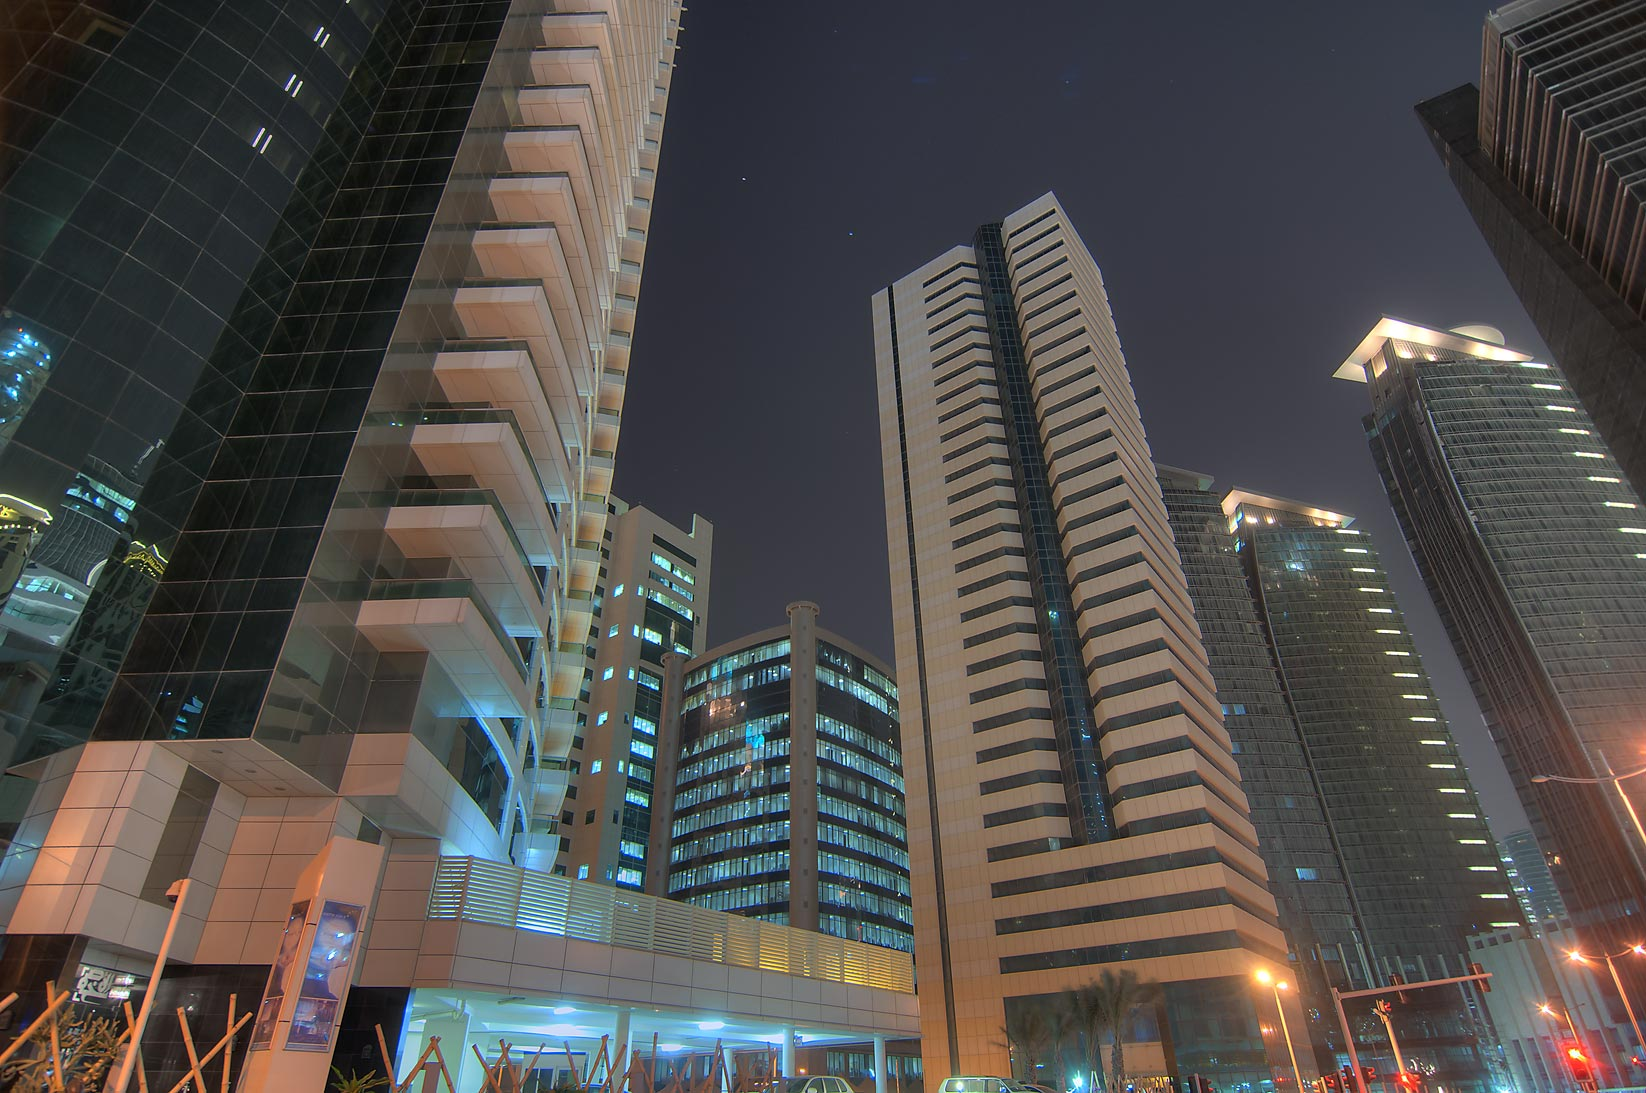 View from a base of Culligan/Everpure Tower in West Bay. Doha, Qatar